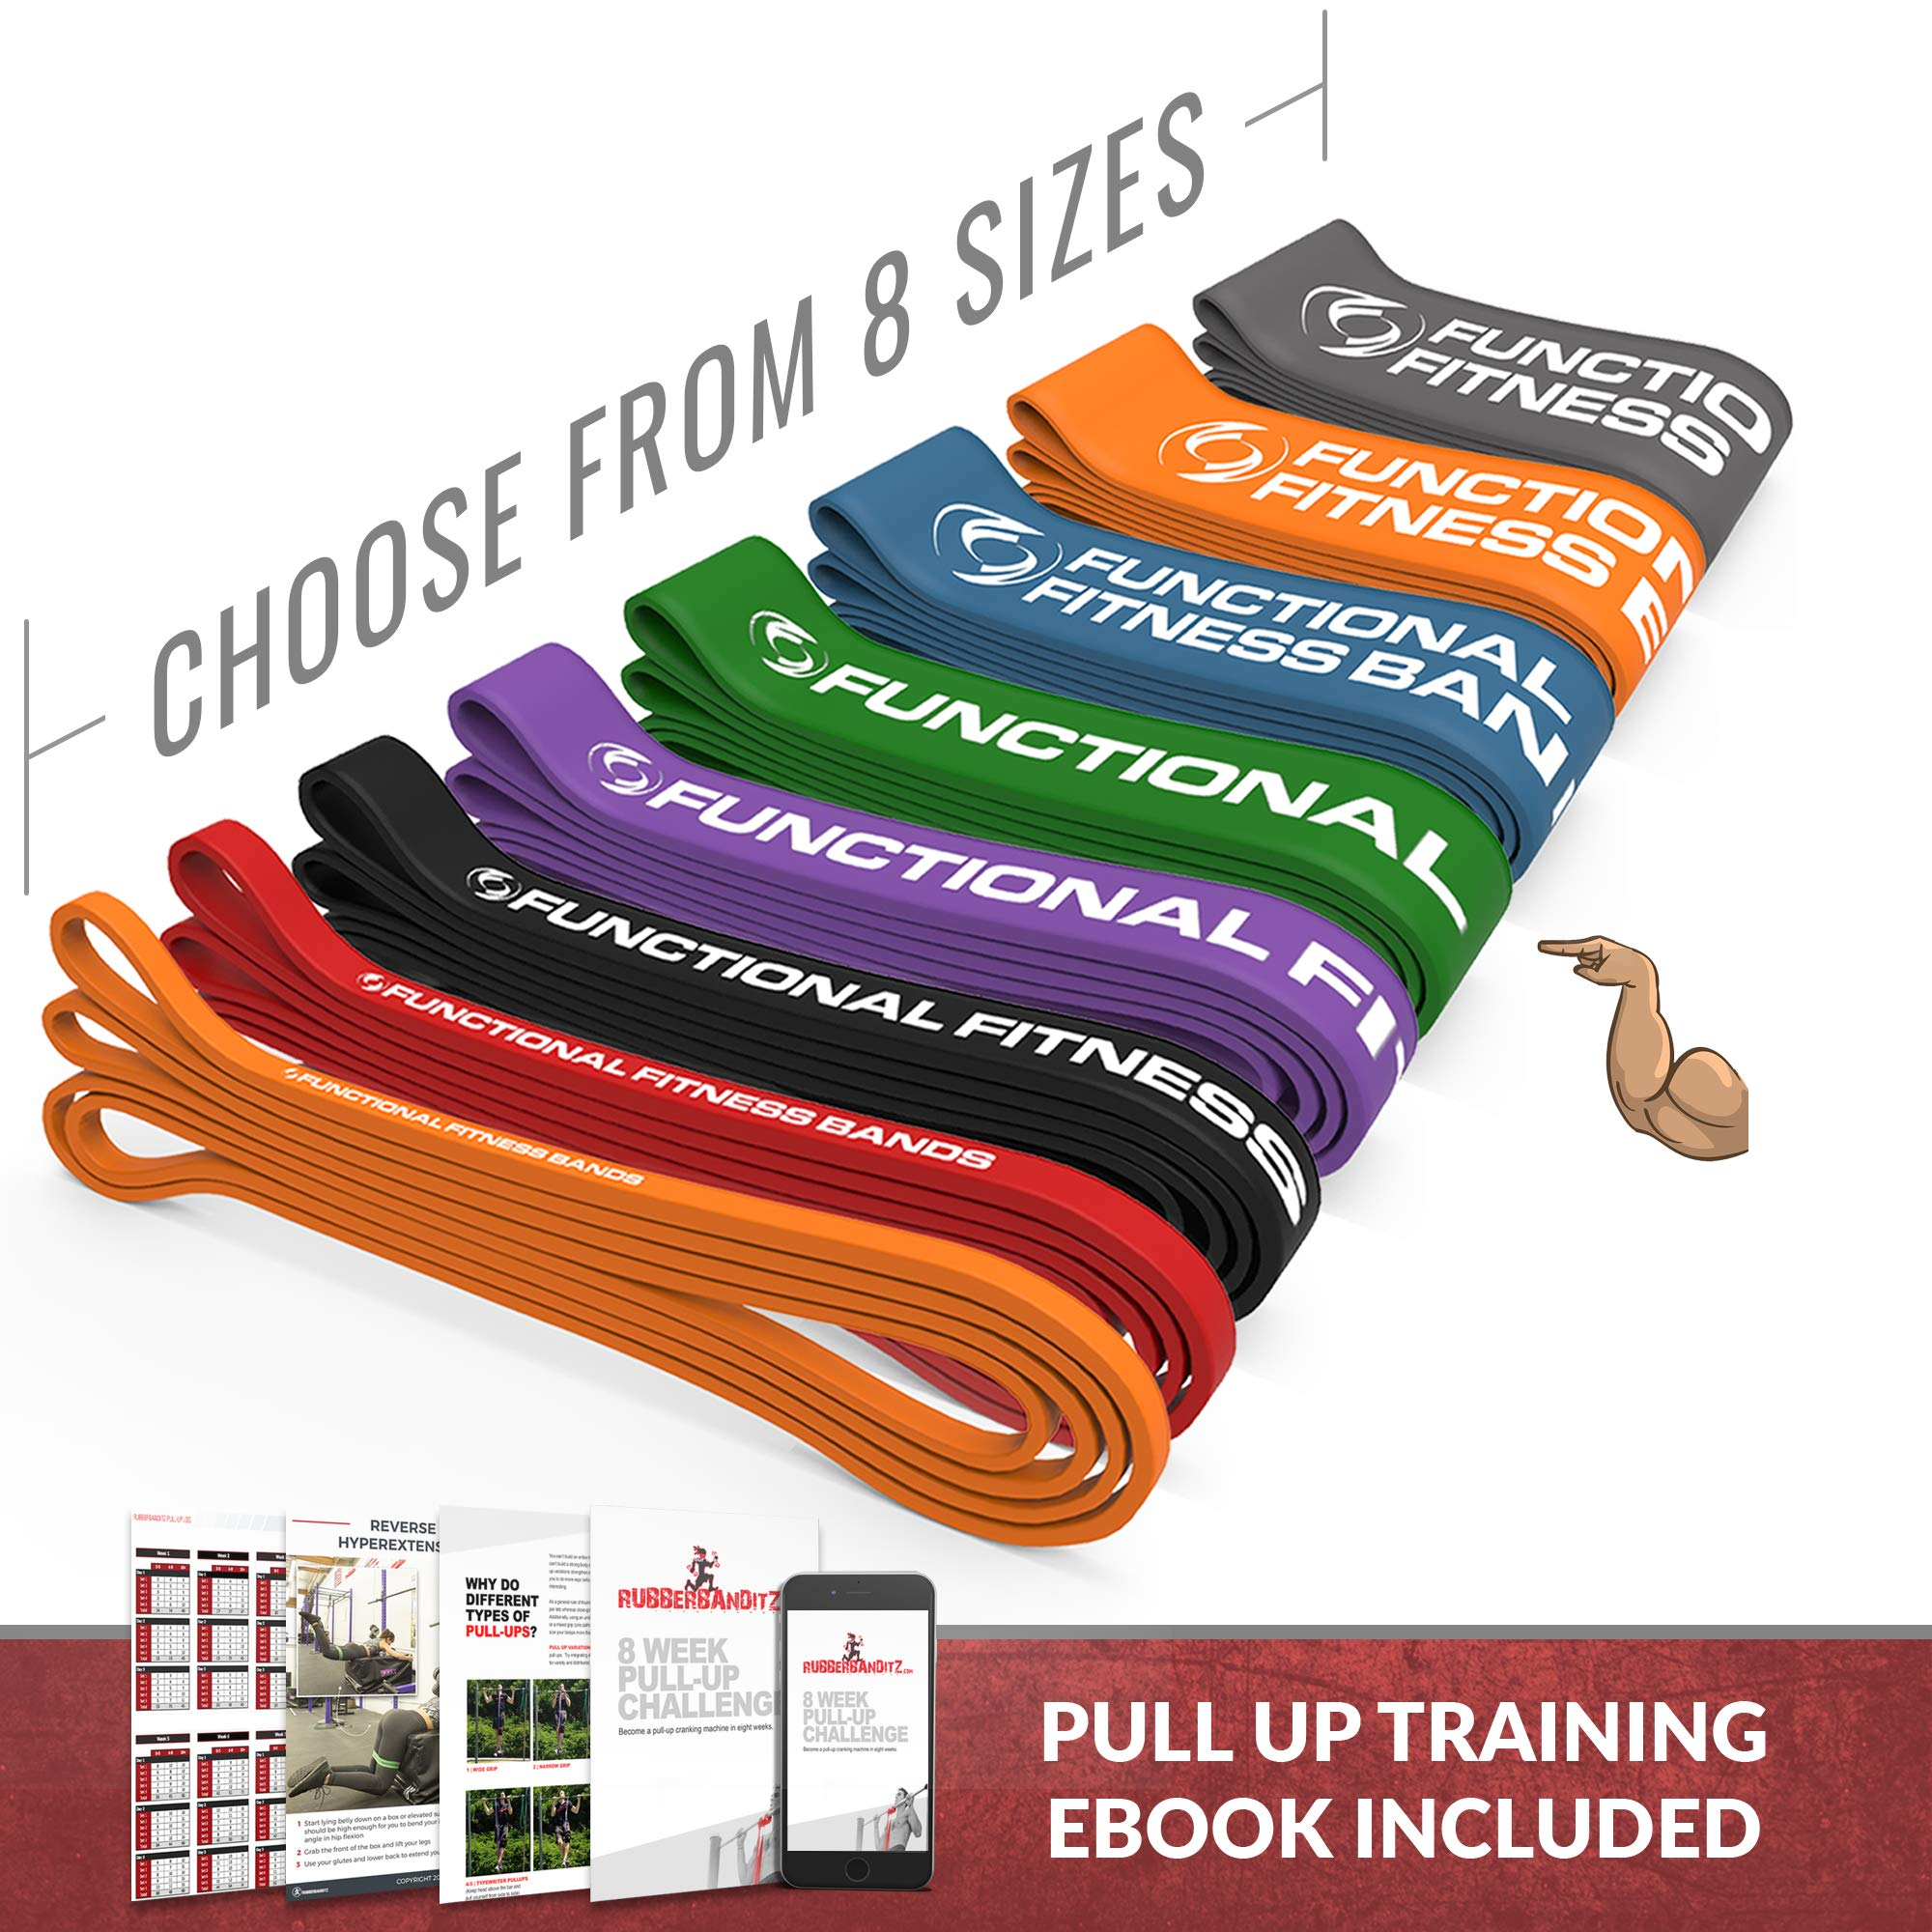 Pull Up Assistance Resistance Exercise Bands - by Functional Fitness | Loop Workout Bands for Stretching, Powerlifting